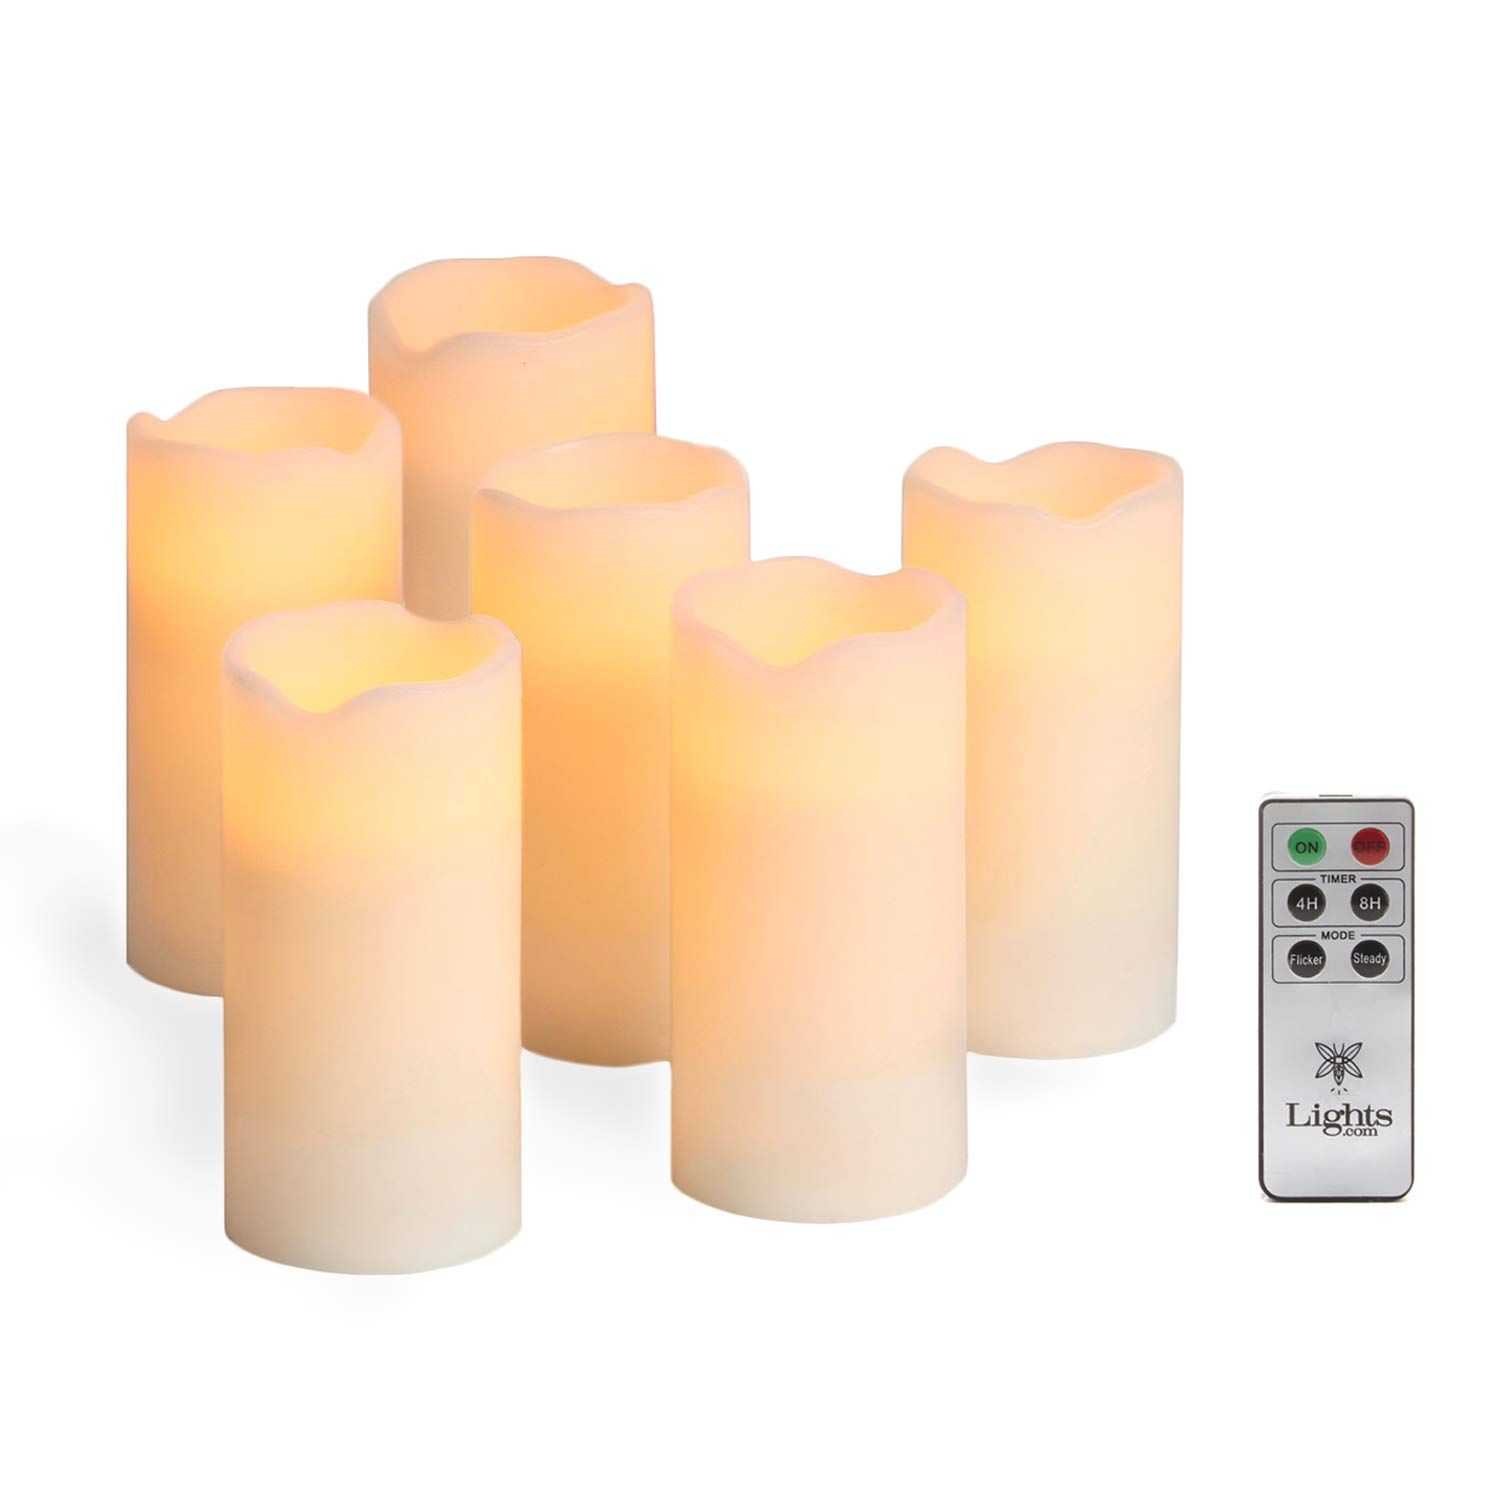 Ivory 6'' Flameless Pillar Candles, Set of 6, Melted Edge Wax, Warm White LEDs, Batteries and Remote Included by LampLust